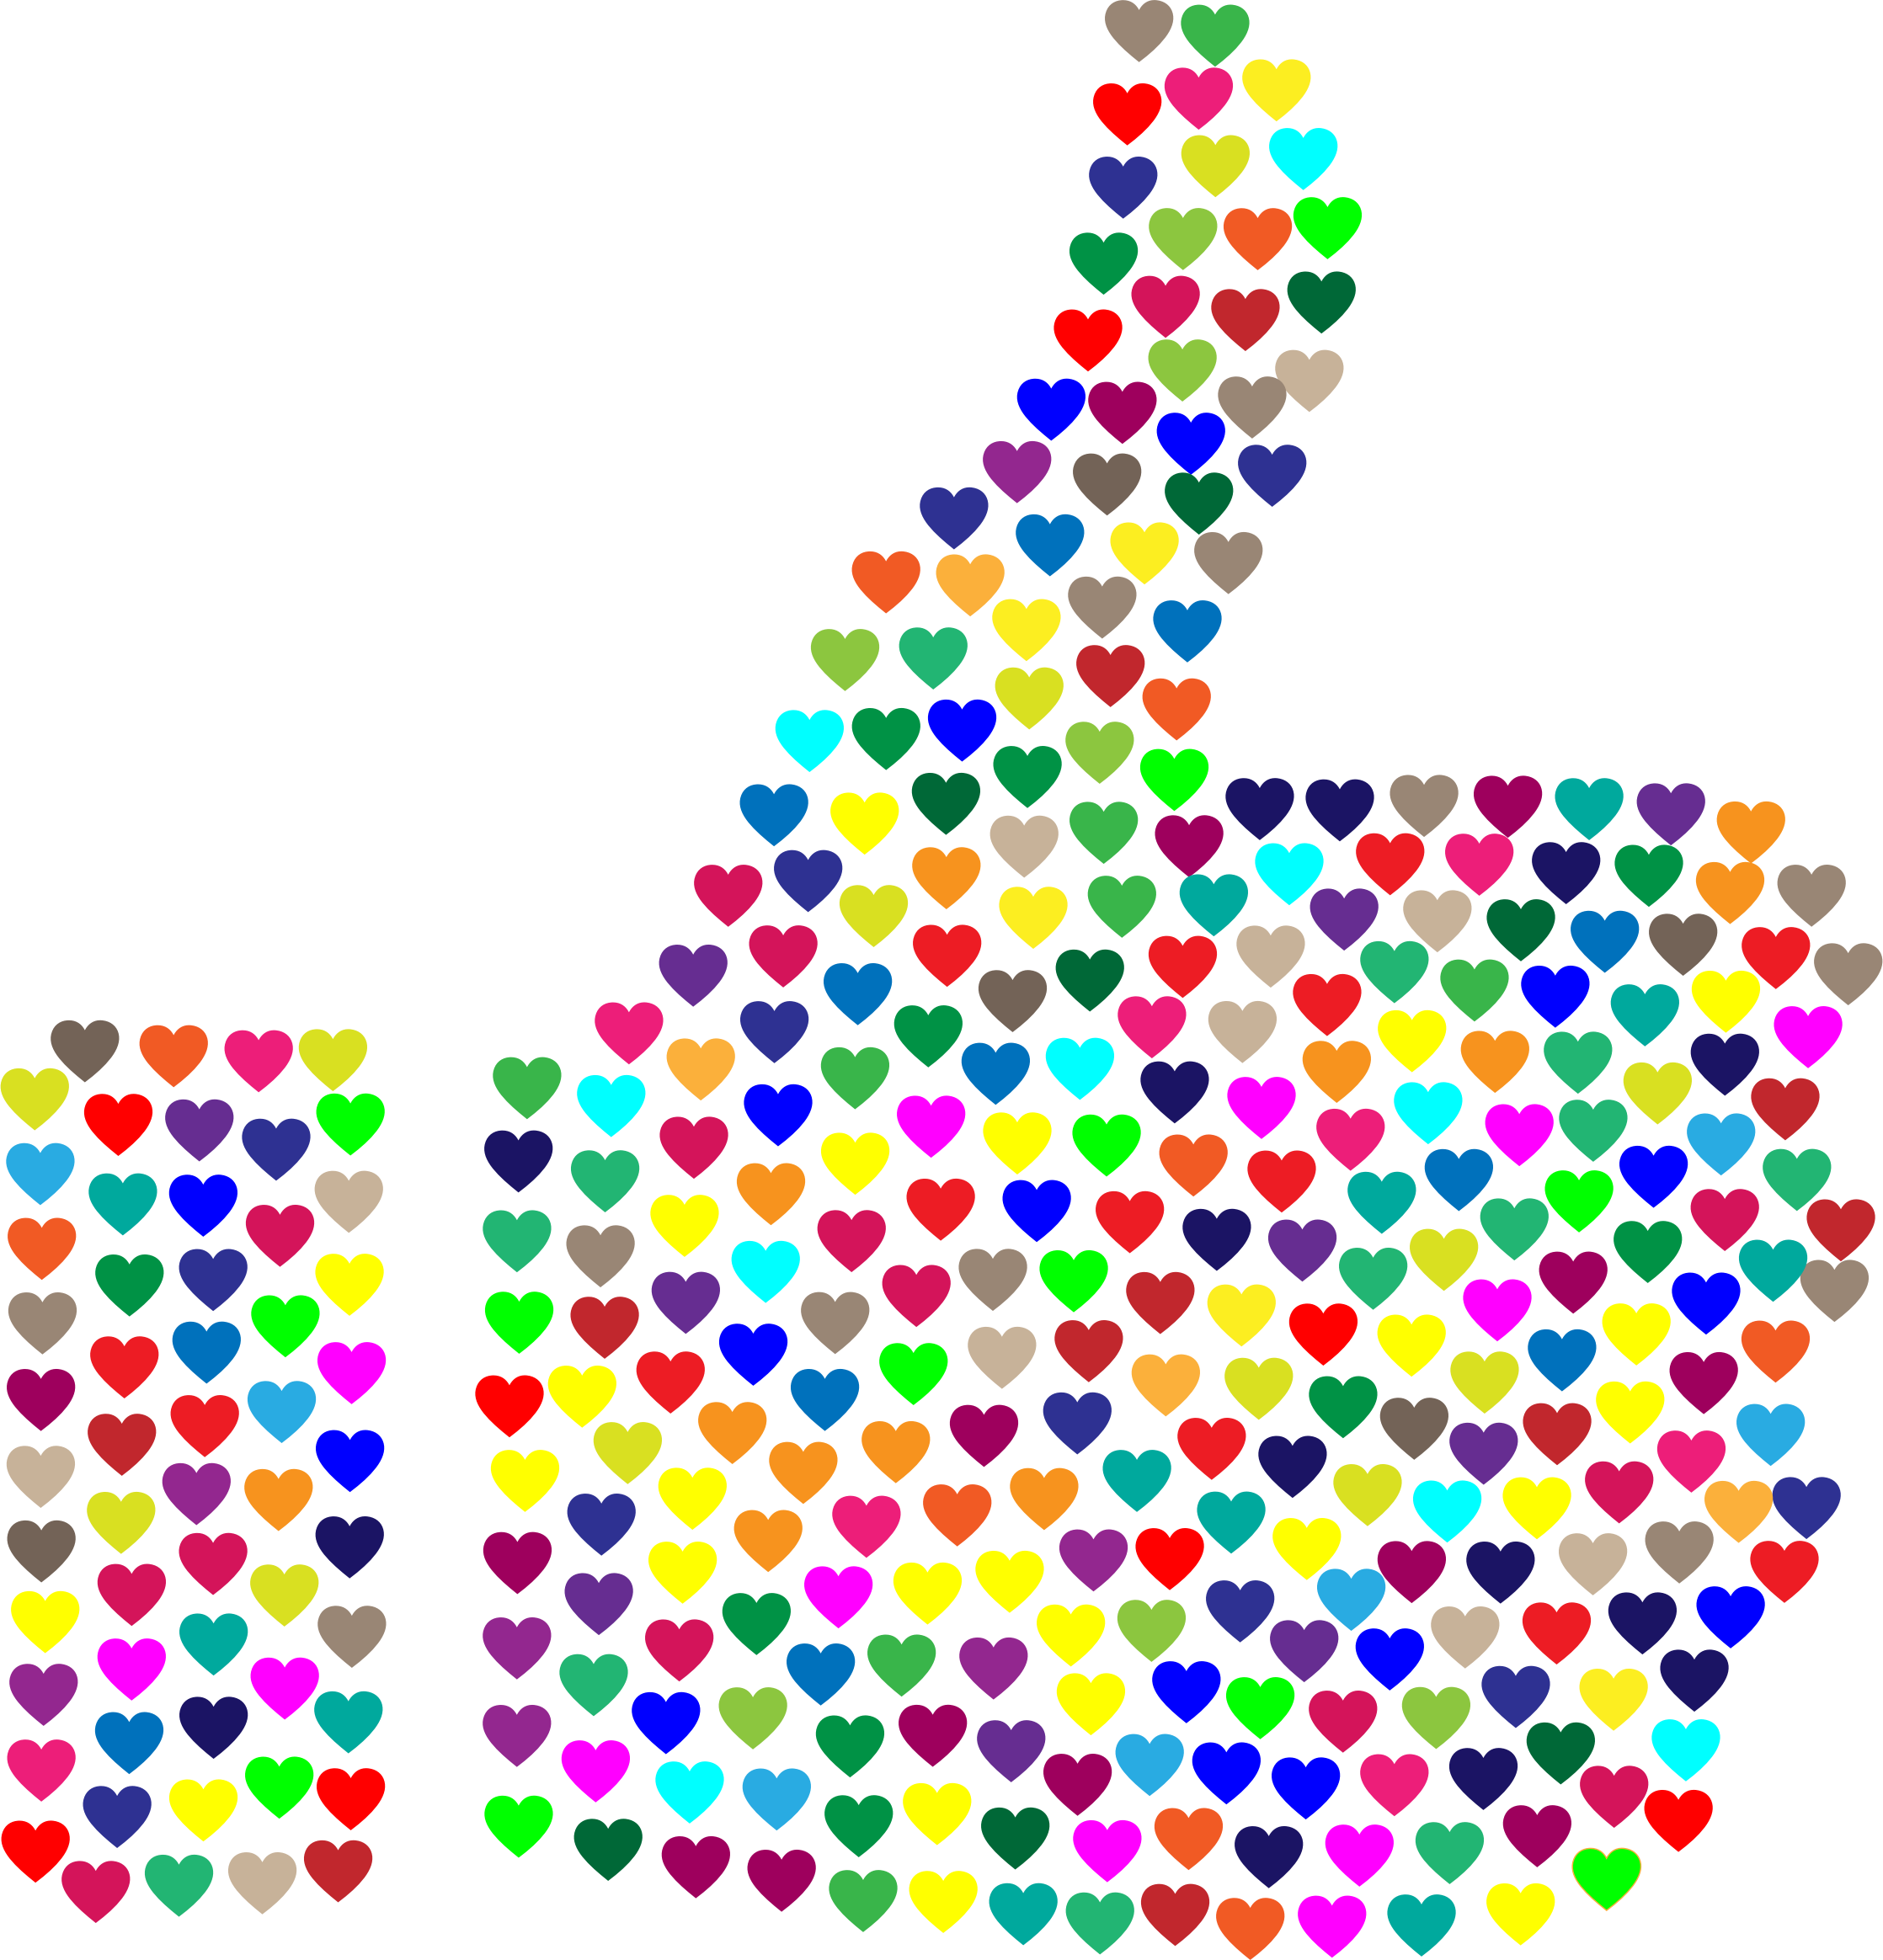 Prismatic Hearts Thumbs Up Silhouette No Background by GDJ